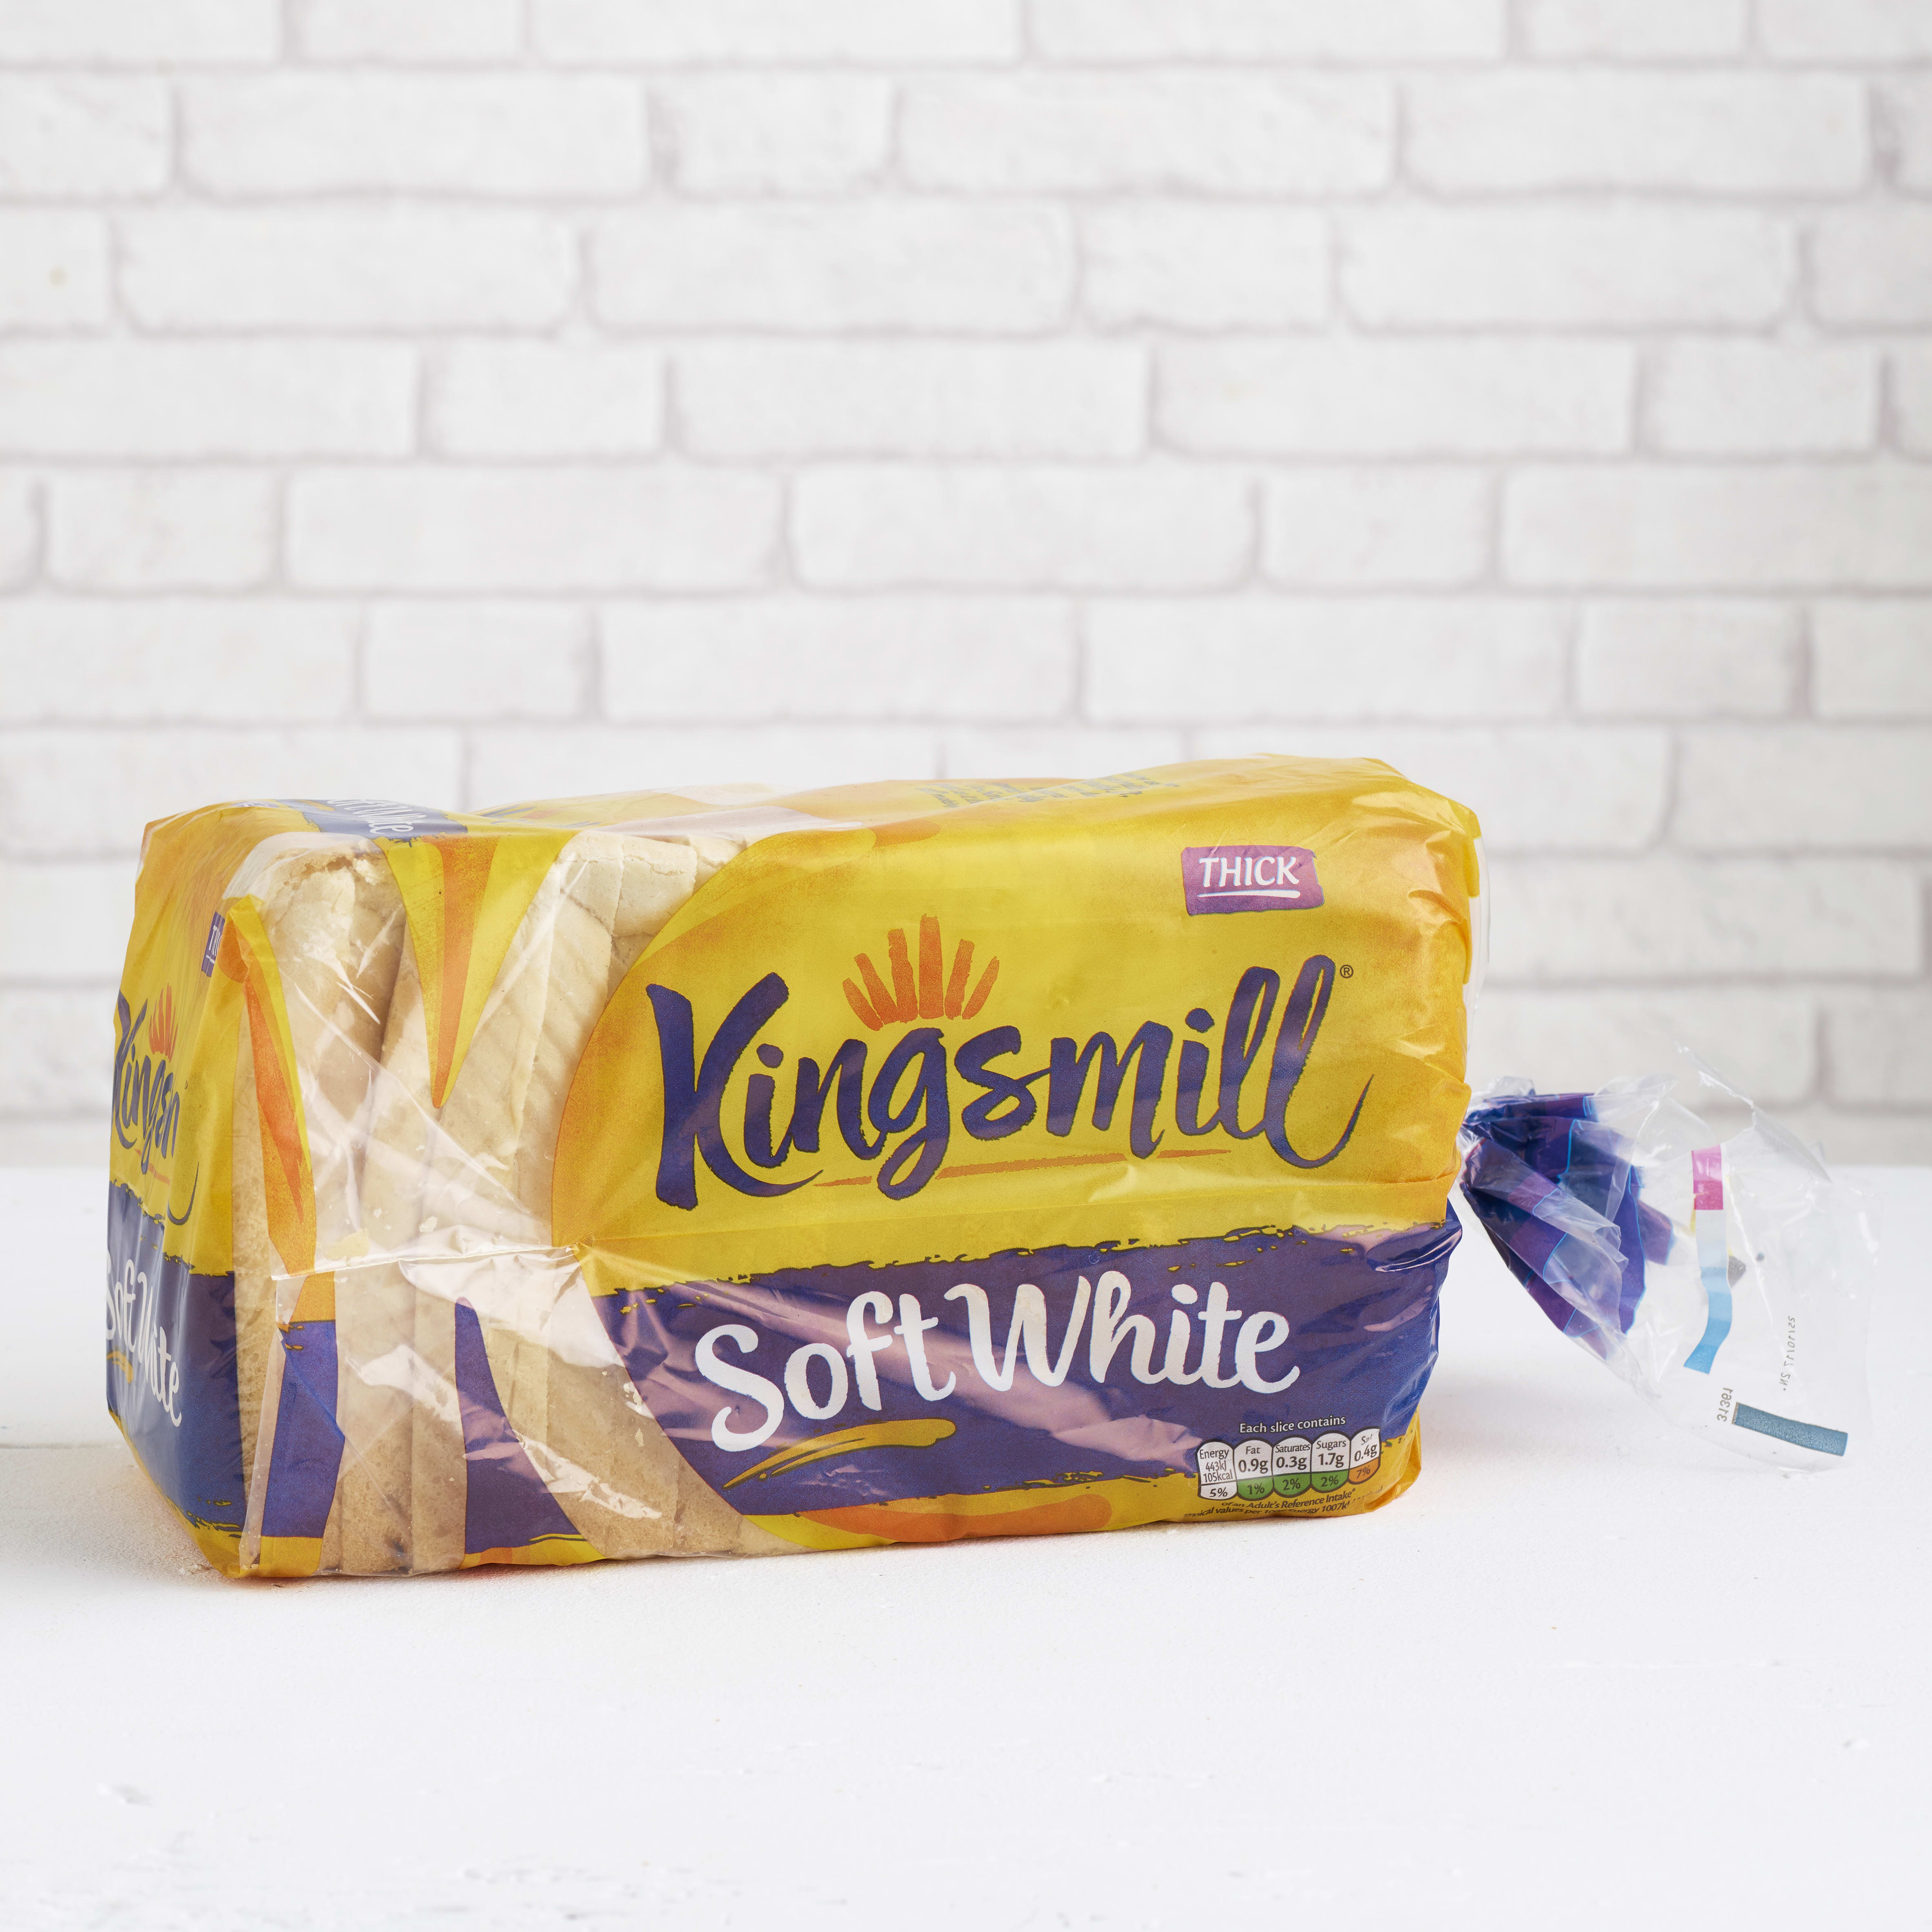 Kingsmill Soft White, Thick, 800g